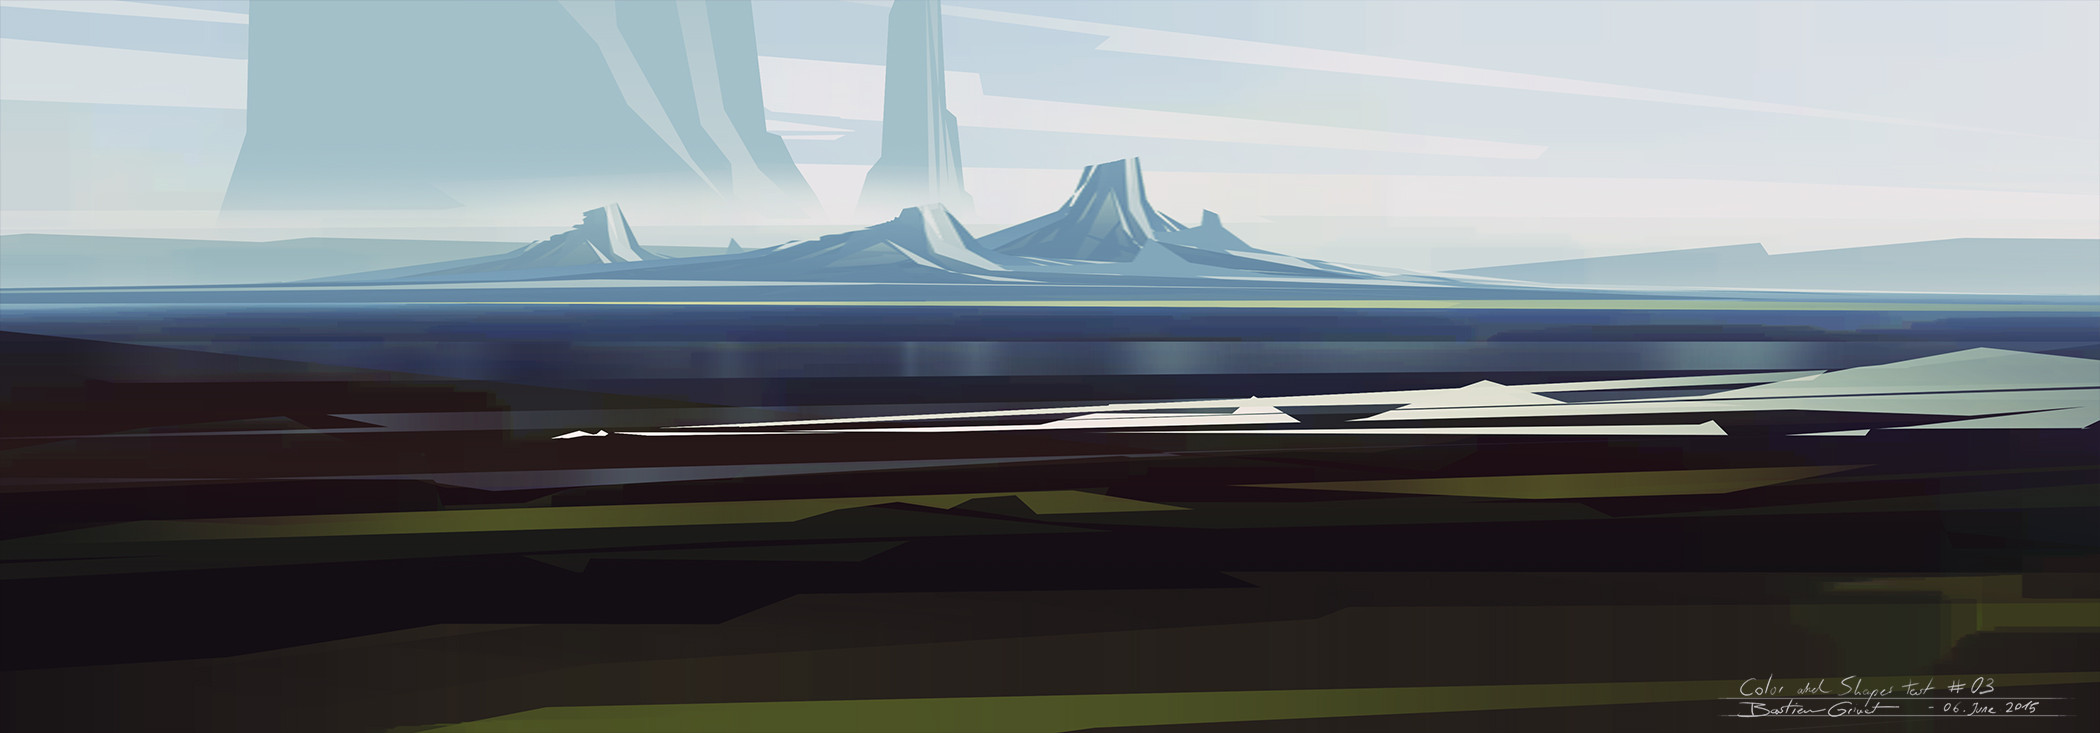 Color and shapes test 03